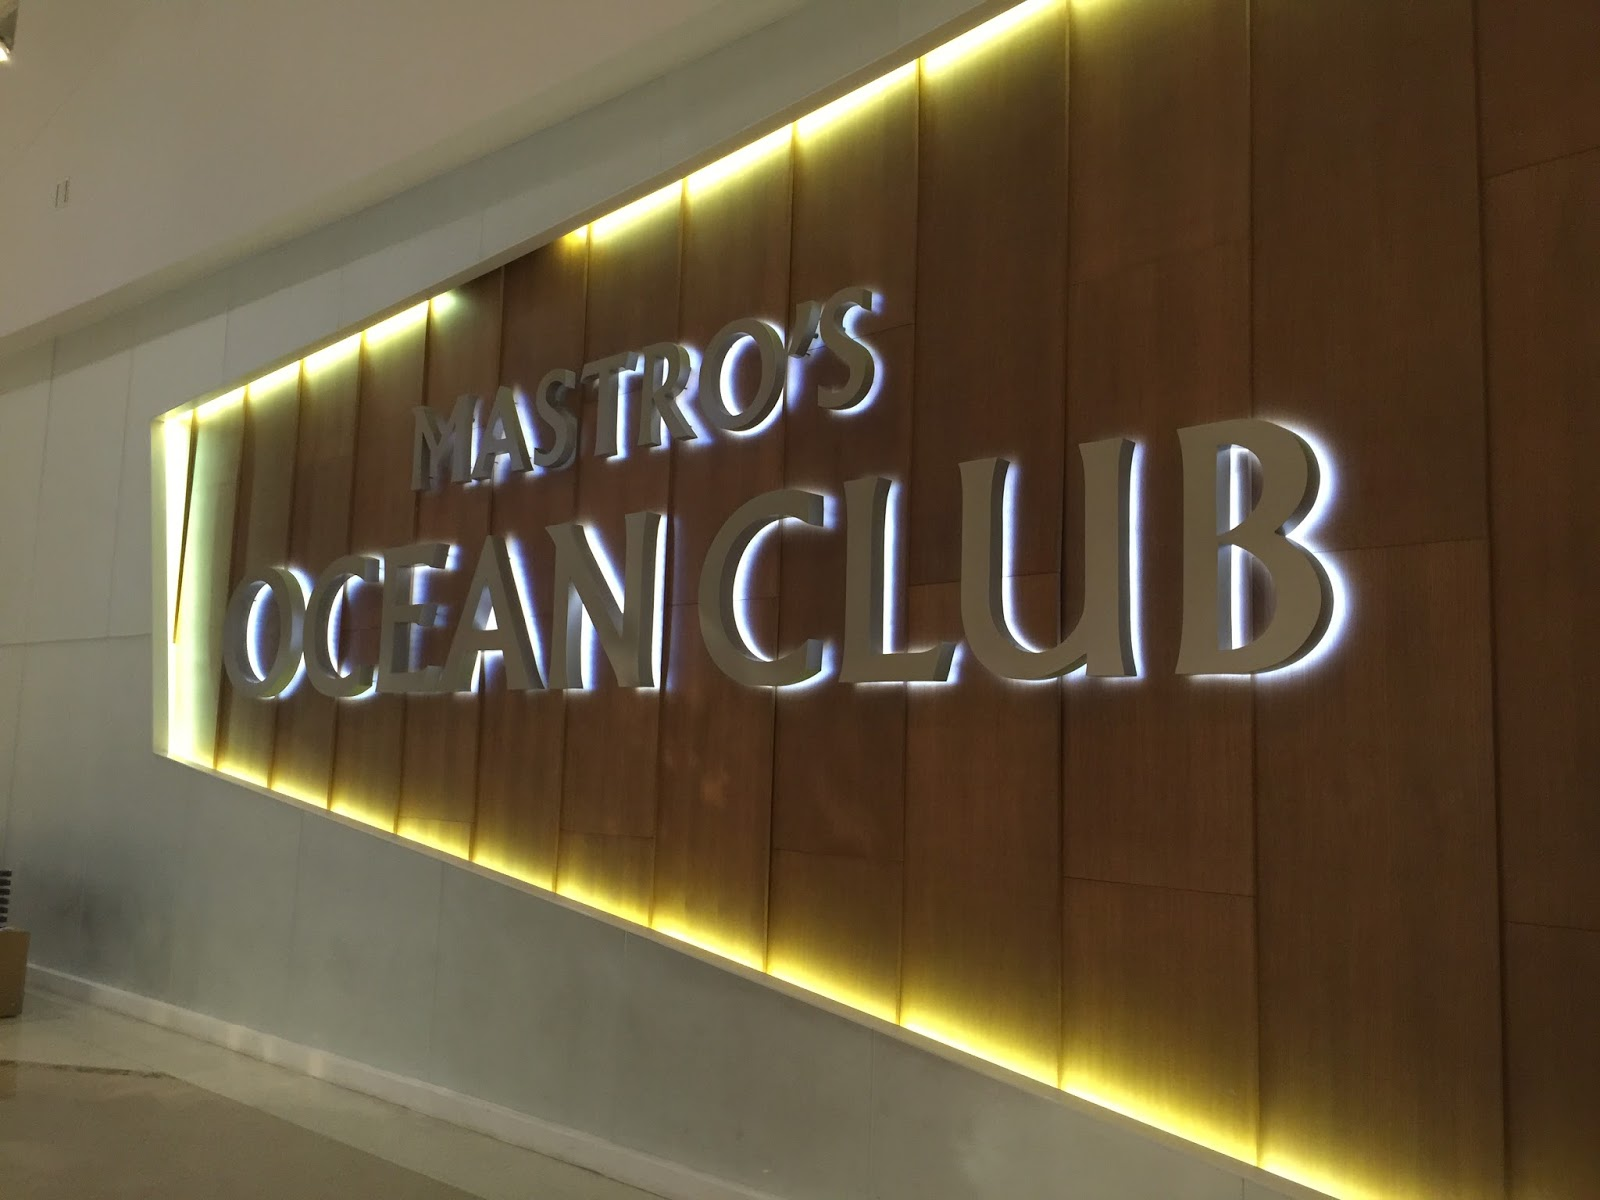 Mastro S Ocean Club Restaurant At Crystals City Center